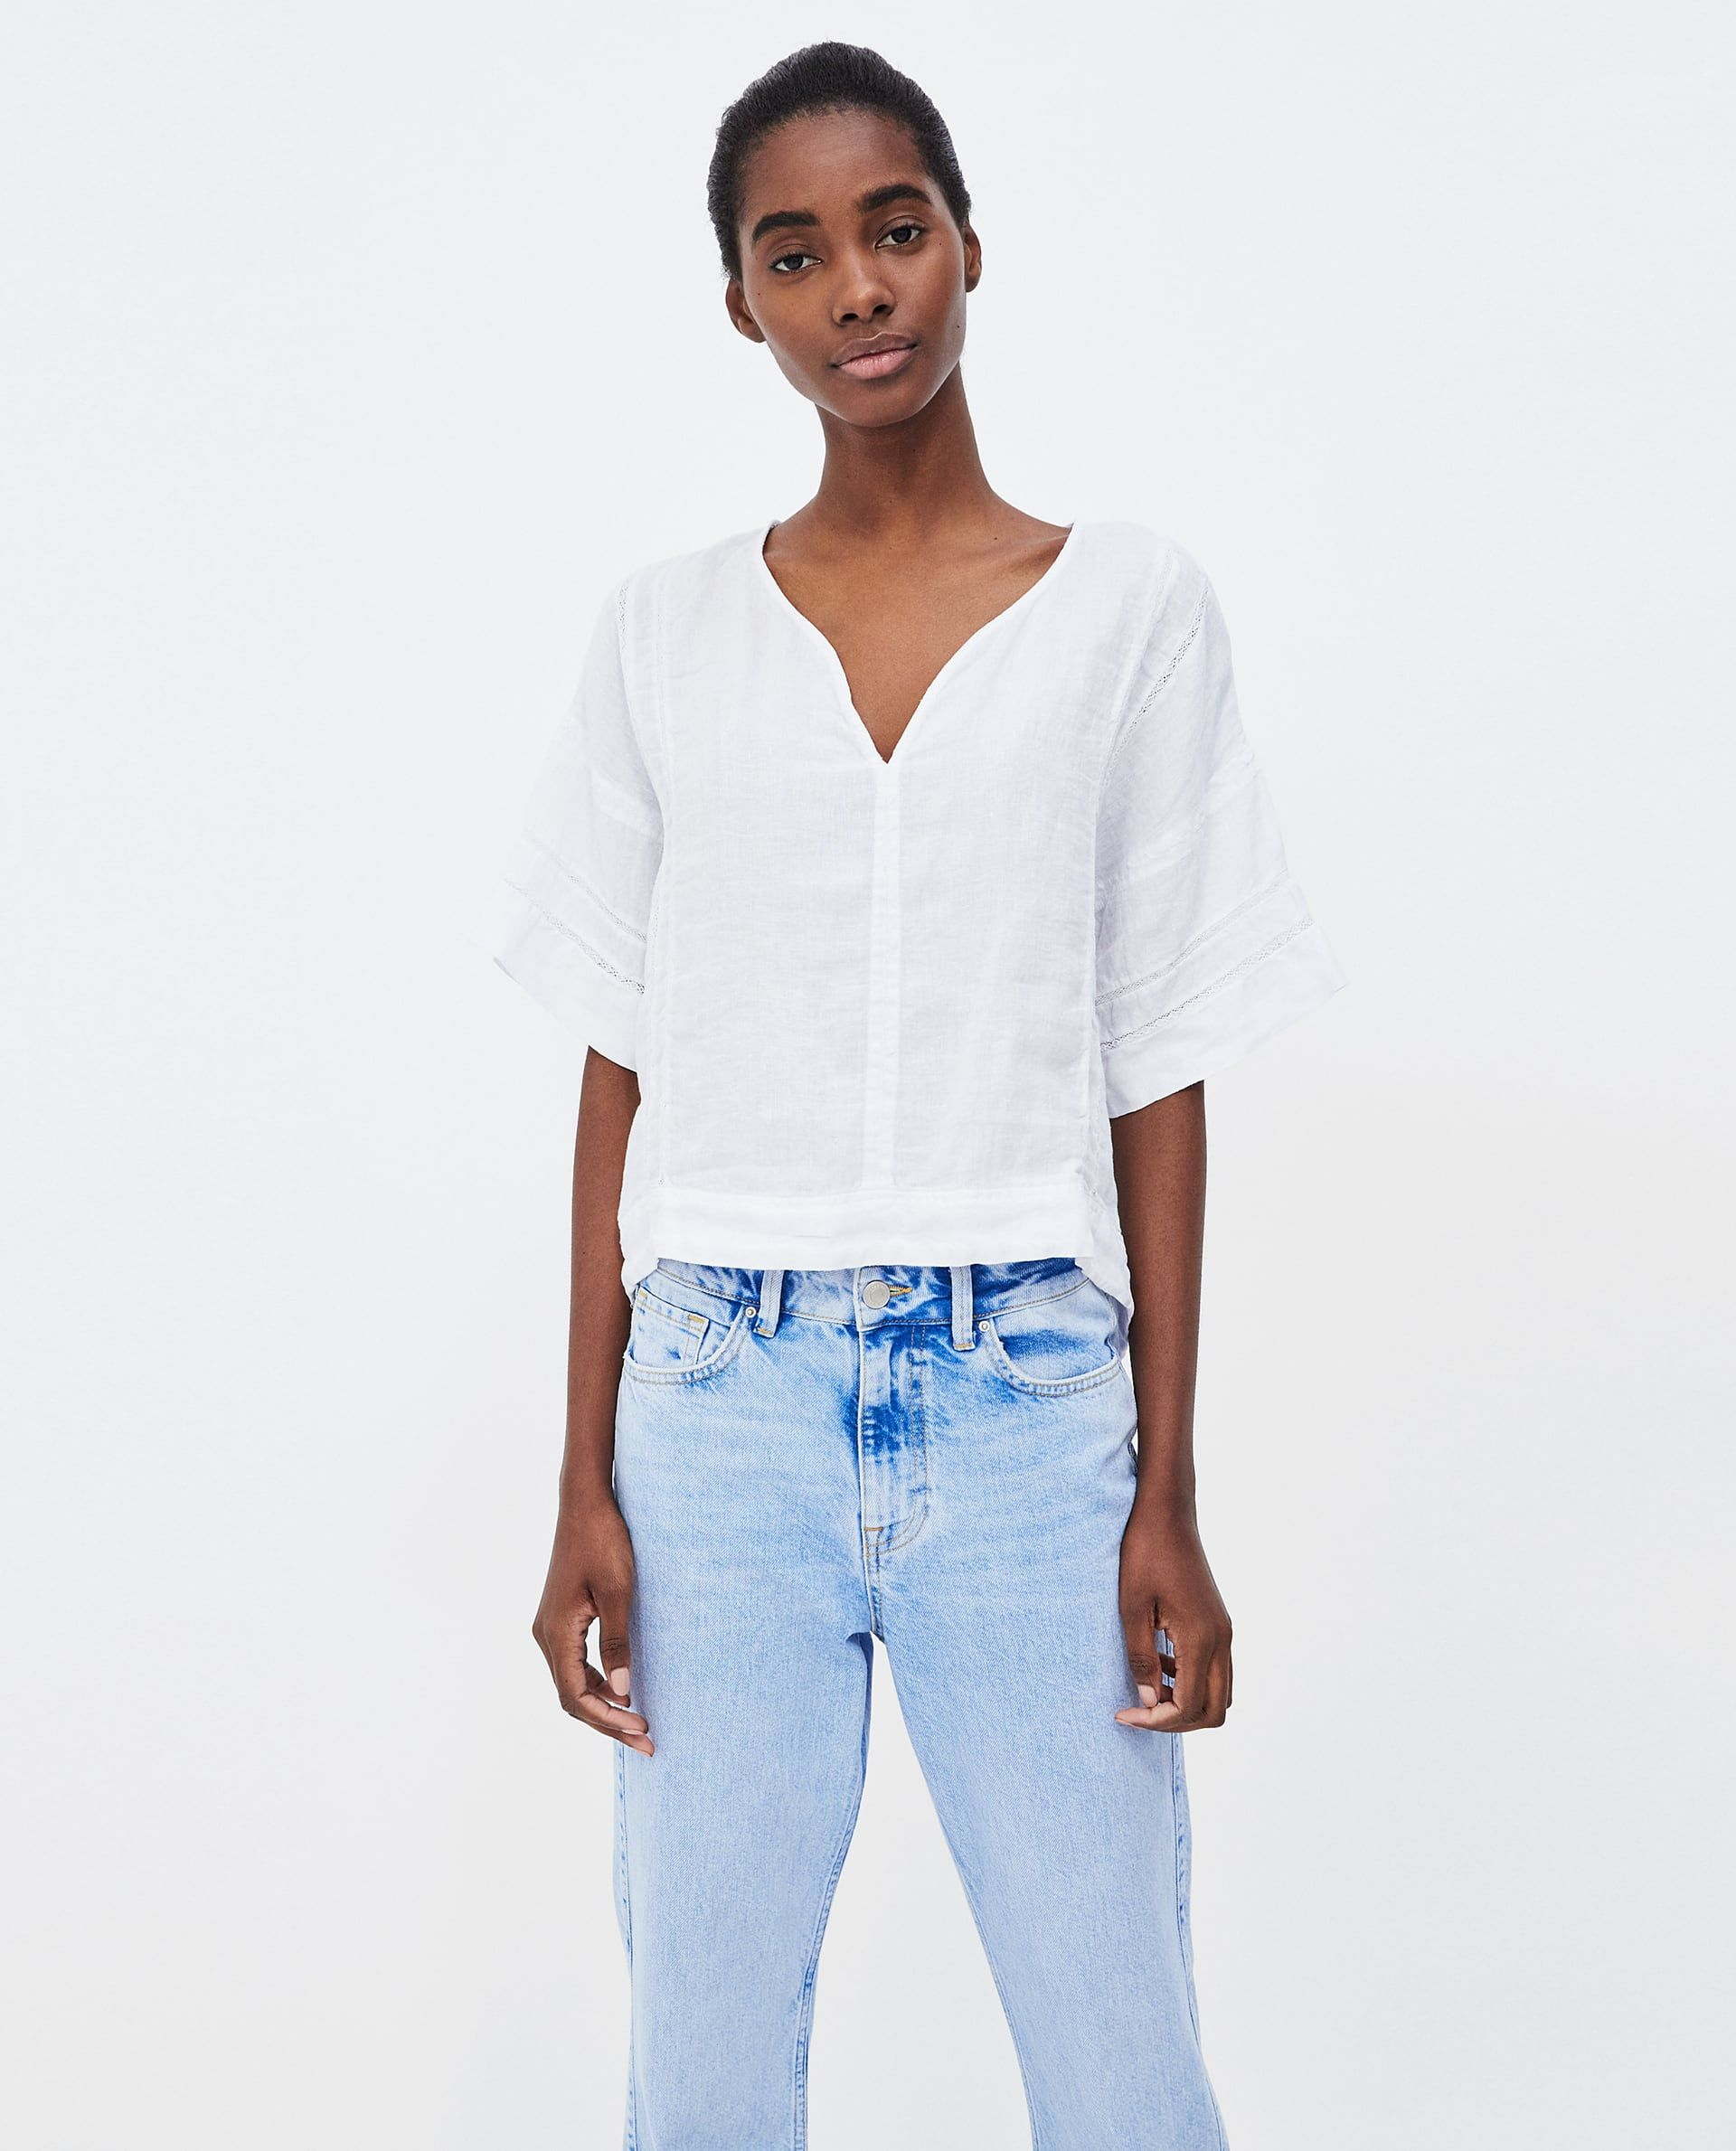 443e2072361d7 WHITE LINEN TOP WITH LACE TRIMS from Zara